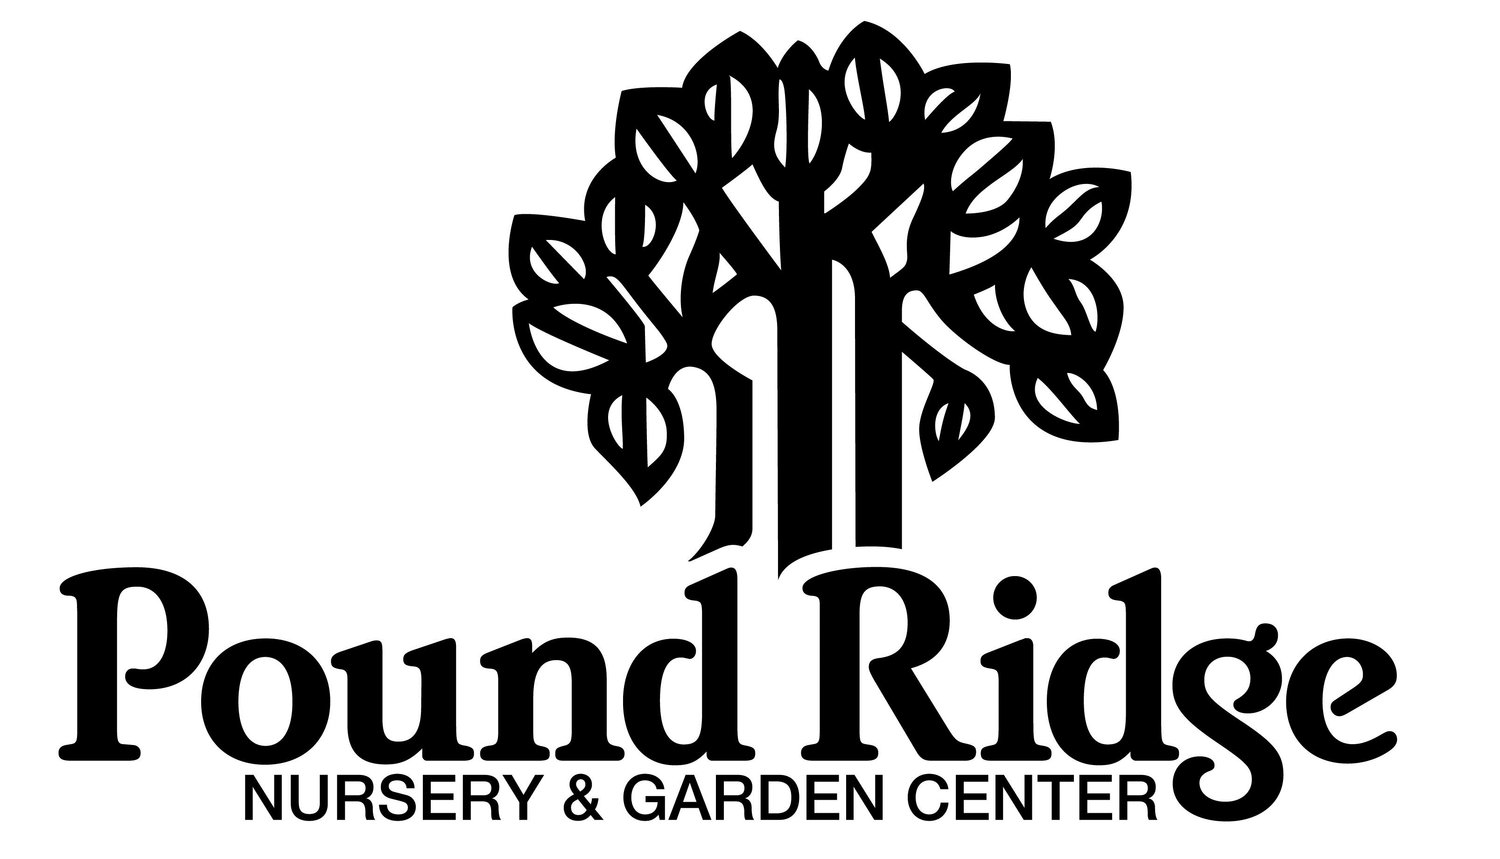 Pound Ridge Nursery & Garden Center, Inc.